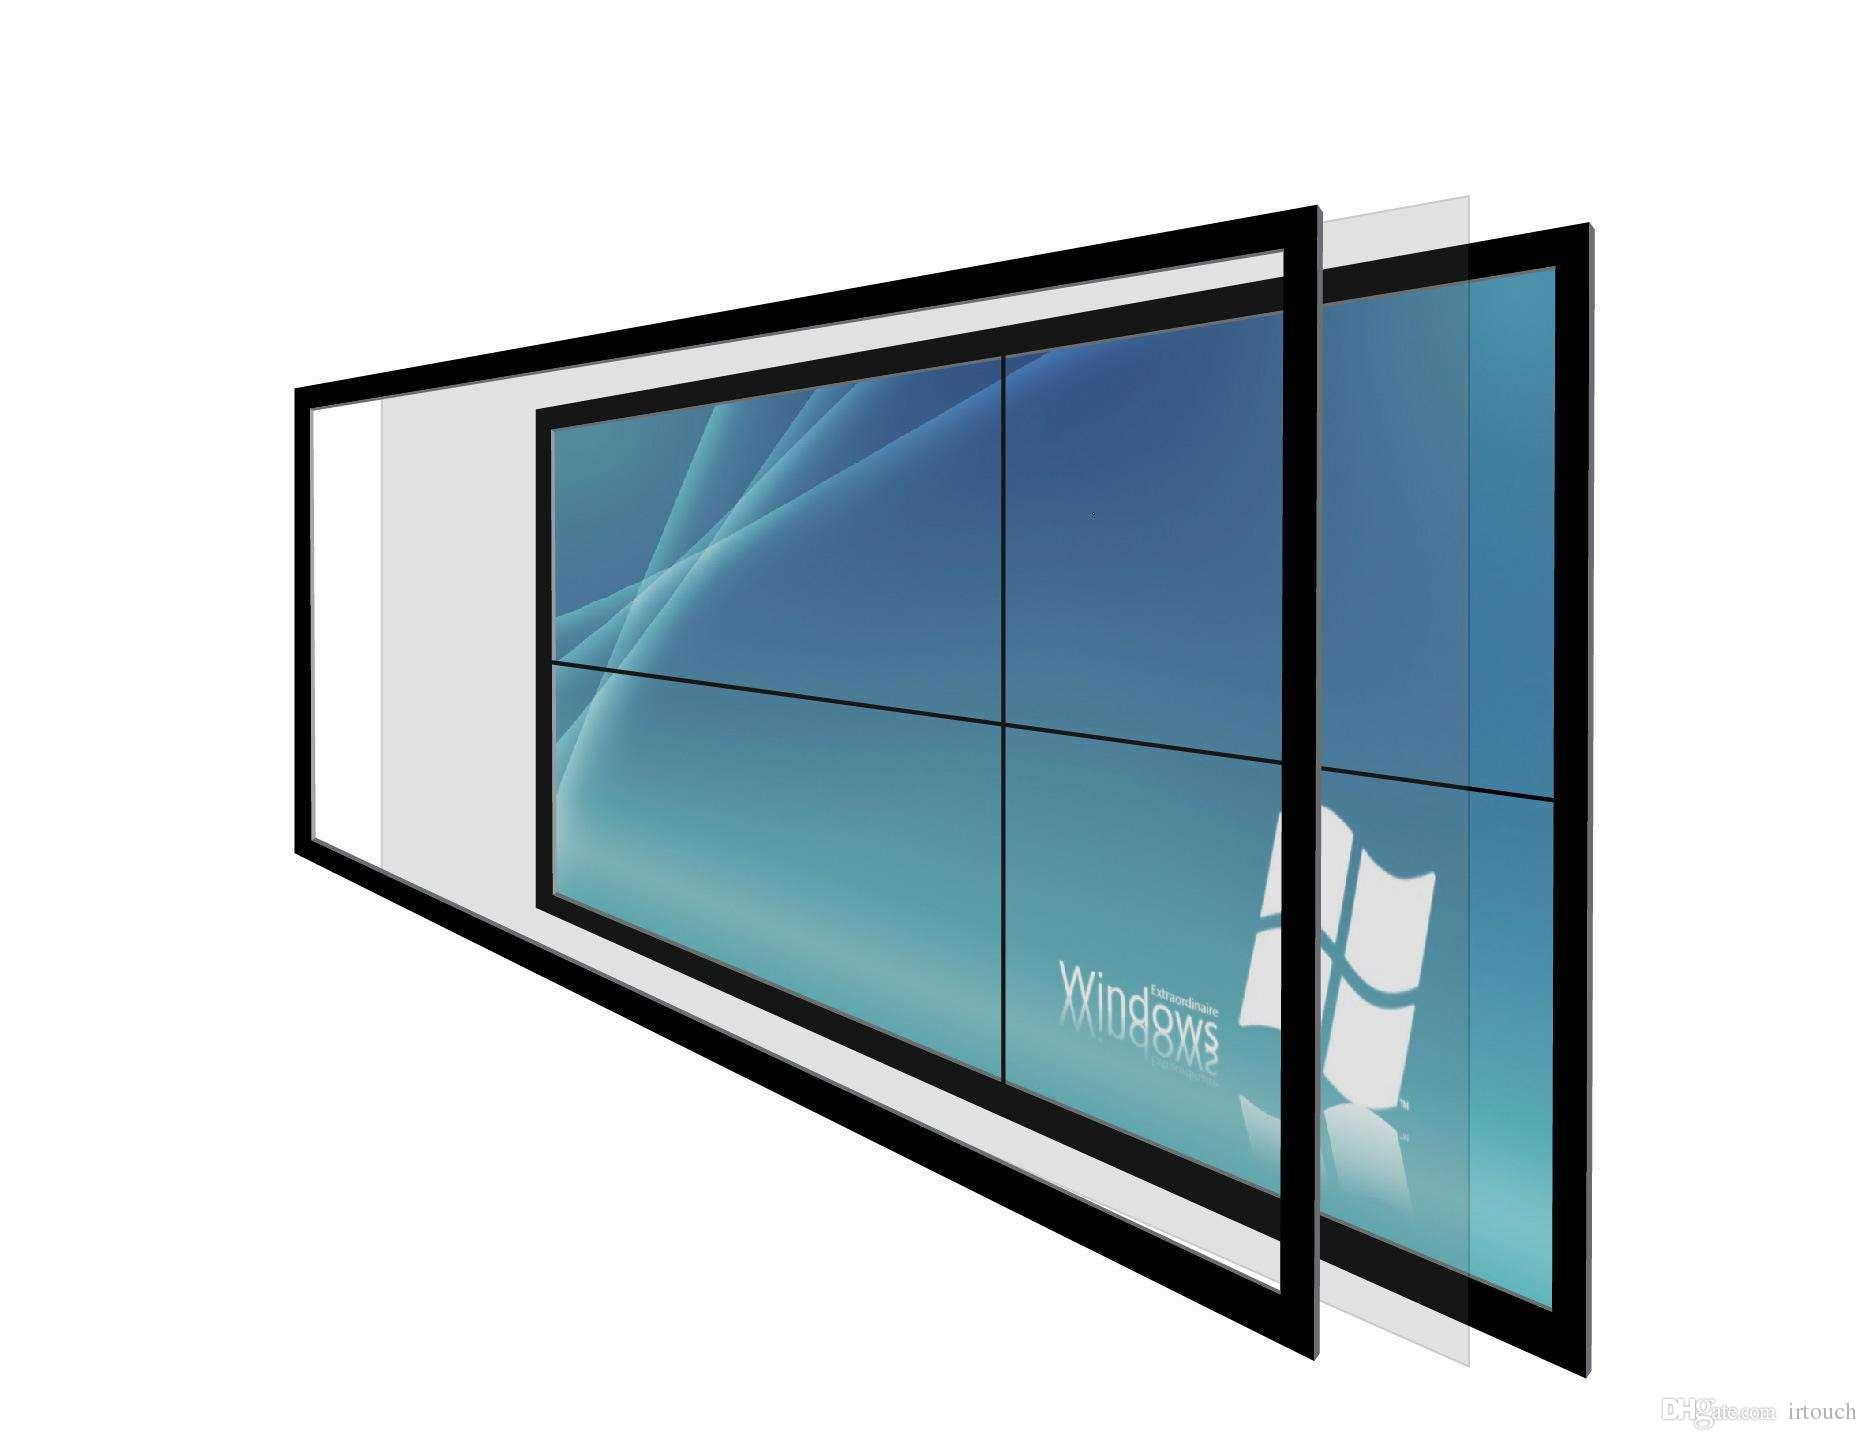 6points 65 inch Infrared IR Touch Screen frame, tea table,LCD monitor or  TV, advertising,,GAME MACHINE,windows XP/7/8 and Android,